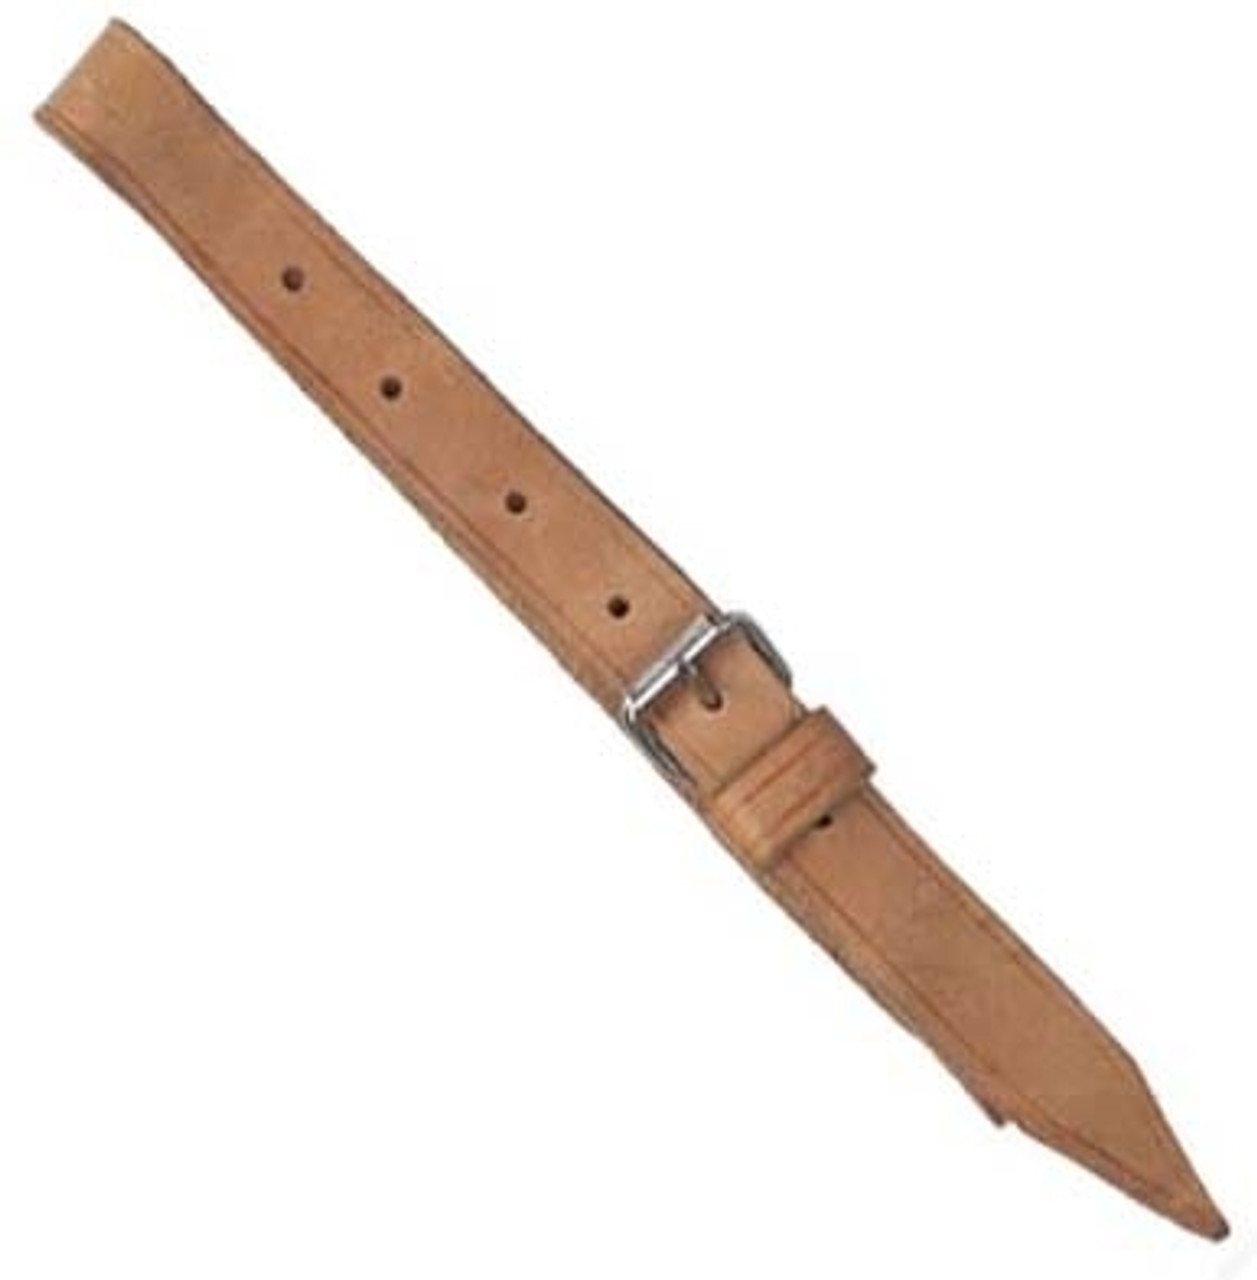 polish Brown Leather 60cm Pack Strap from Hessen Antique